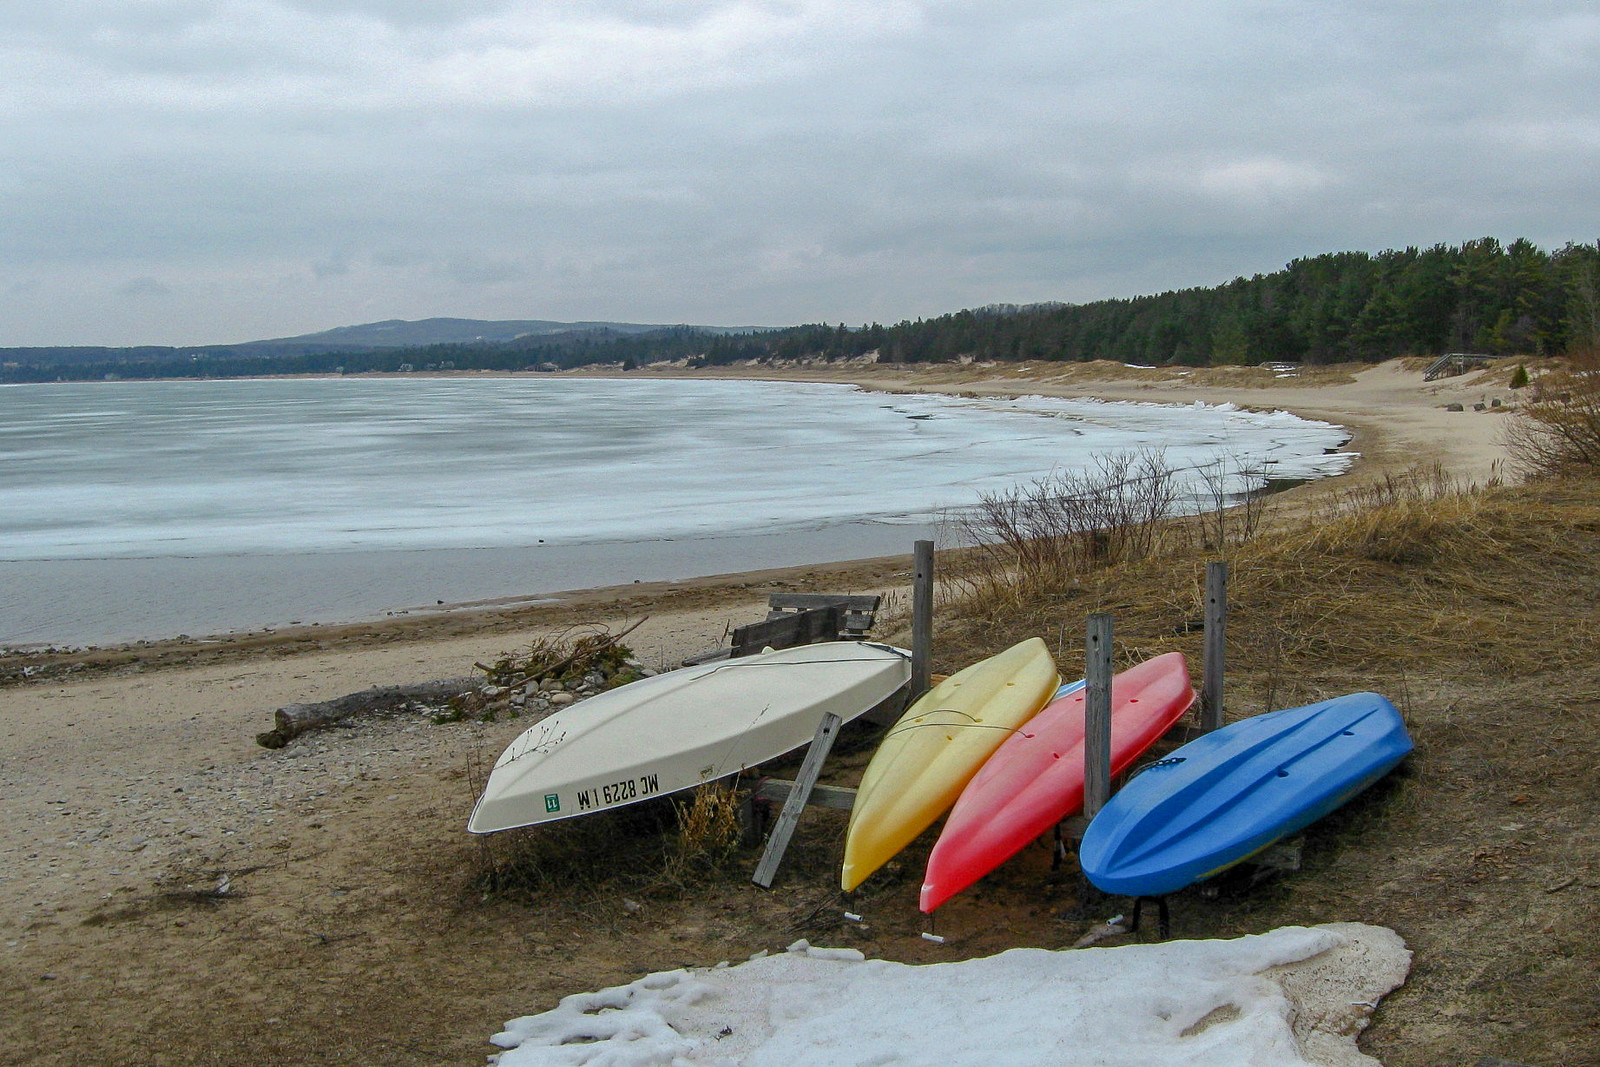 Summer fun waits patiently on the shore for the ice to clear and some sunshine...